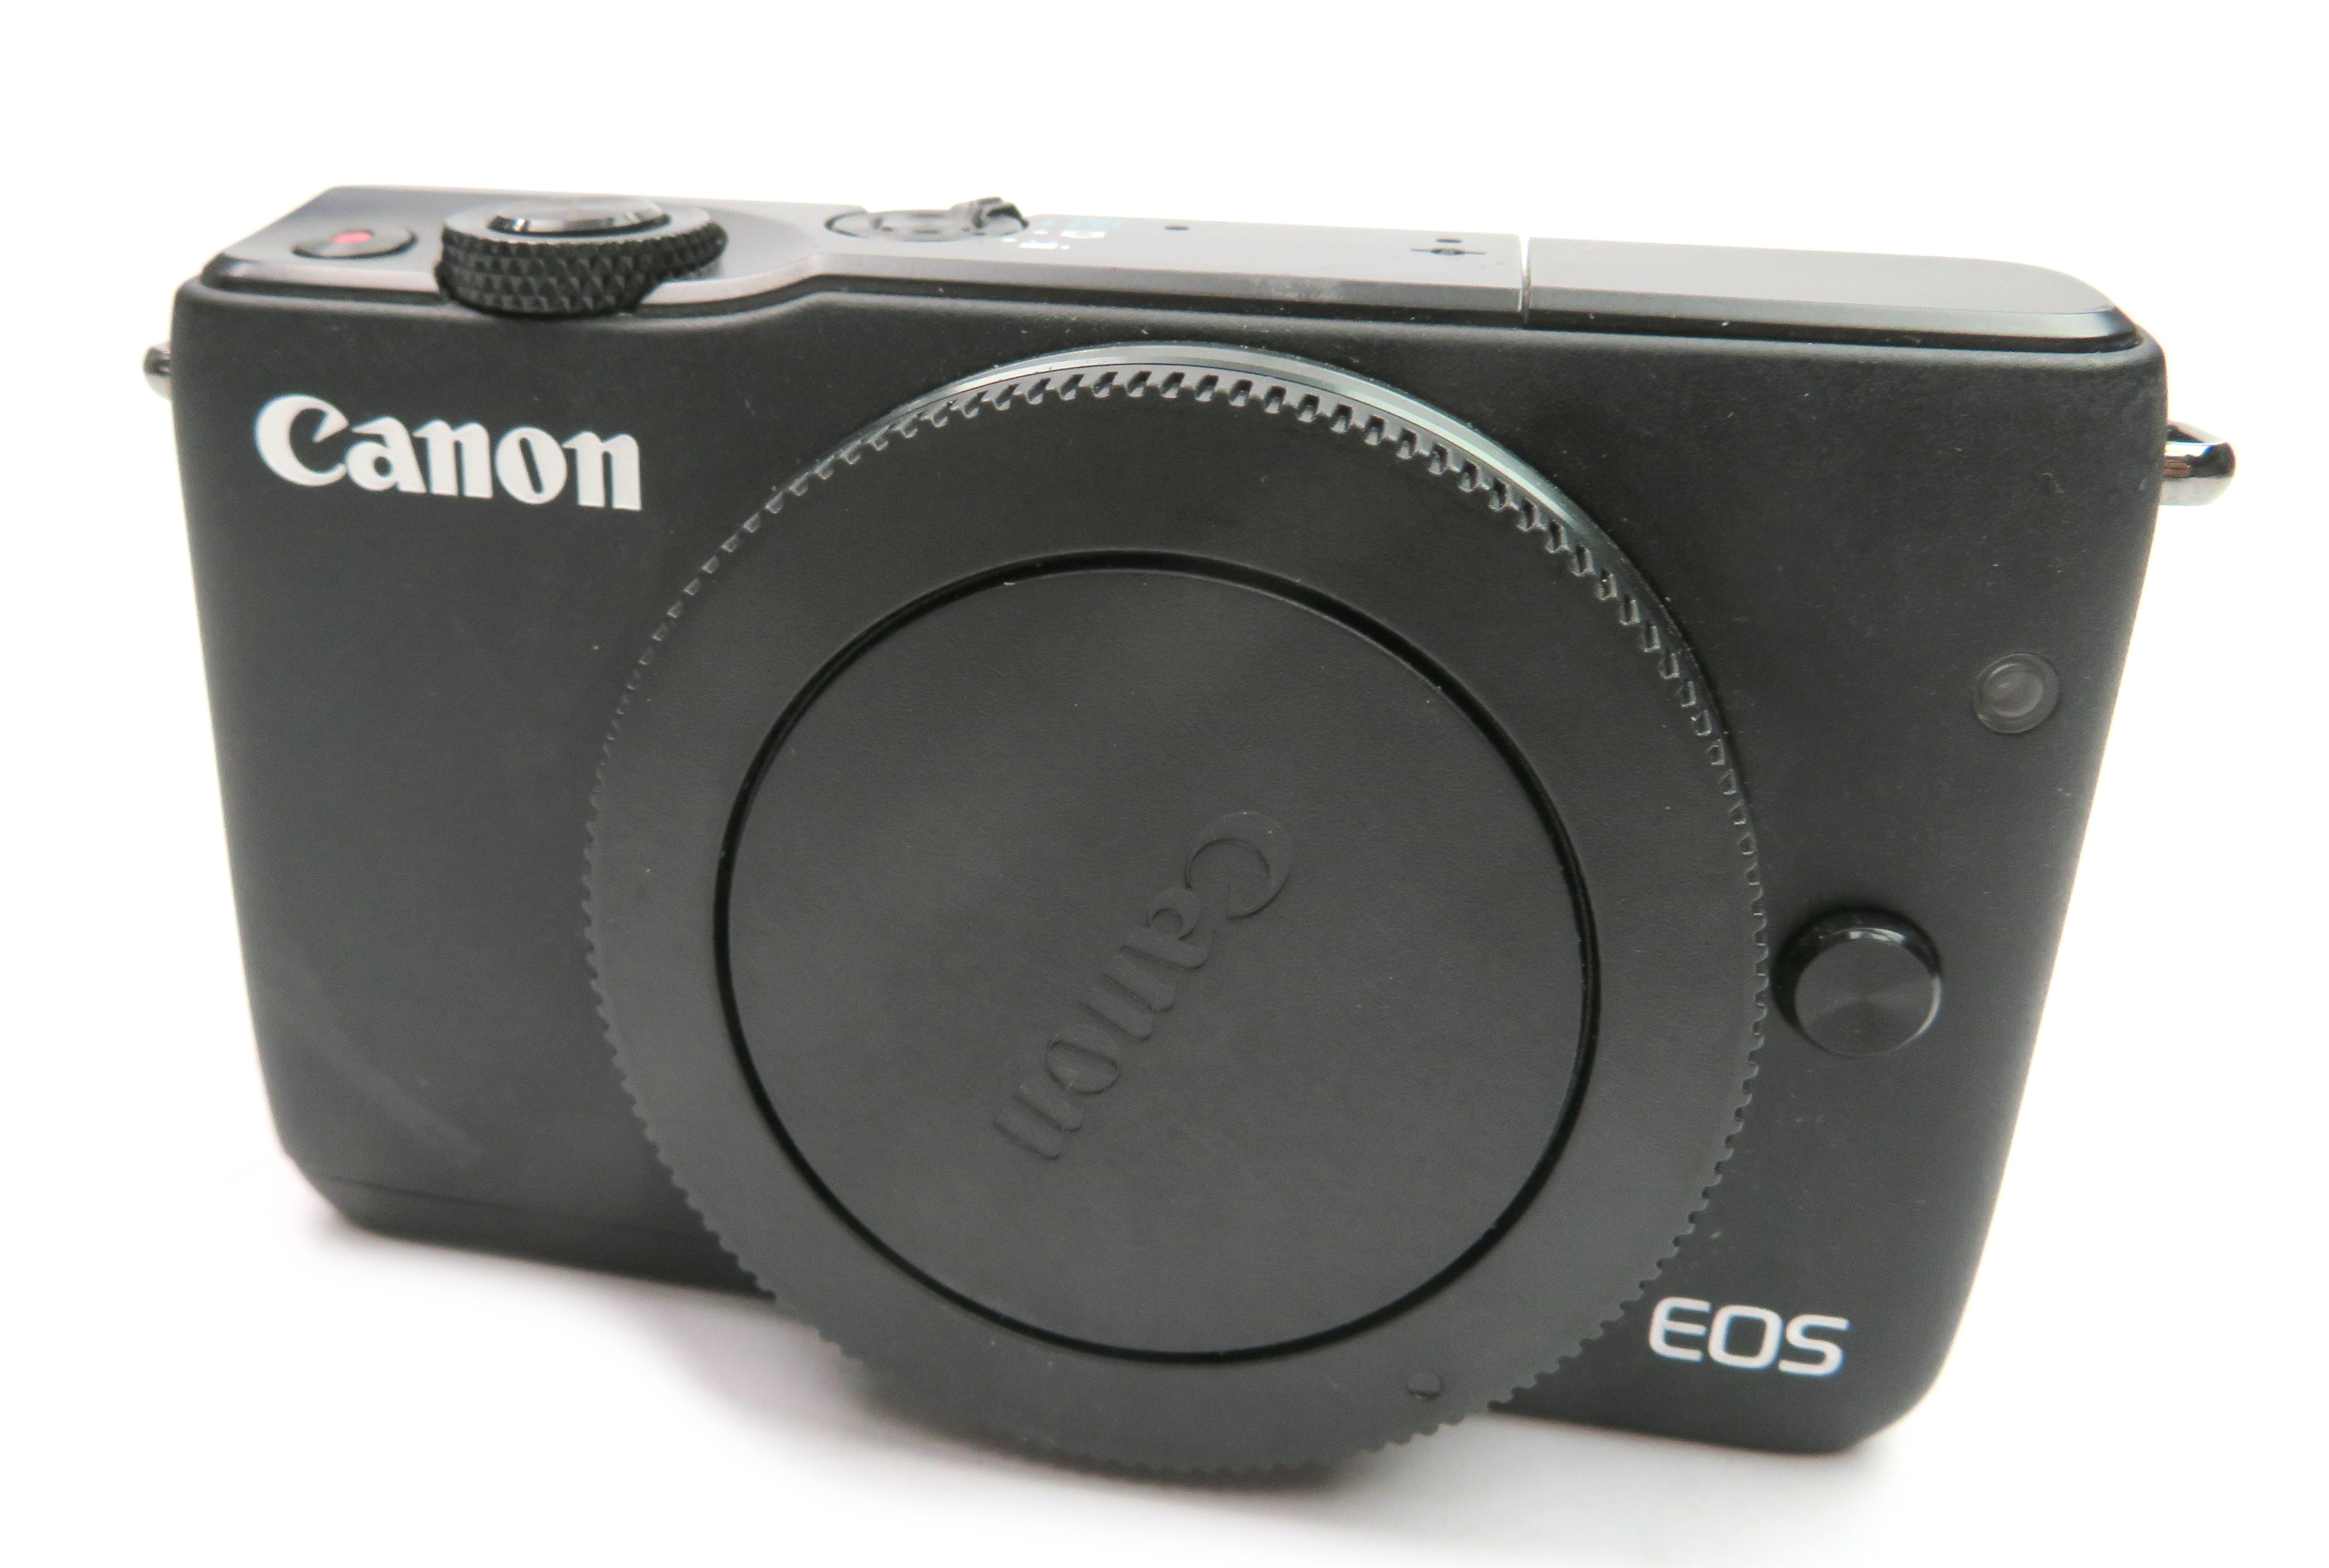 Canon Eos M10 Canon Eos M10 Aps C Digital Camera Body Only Black Sn